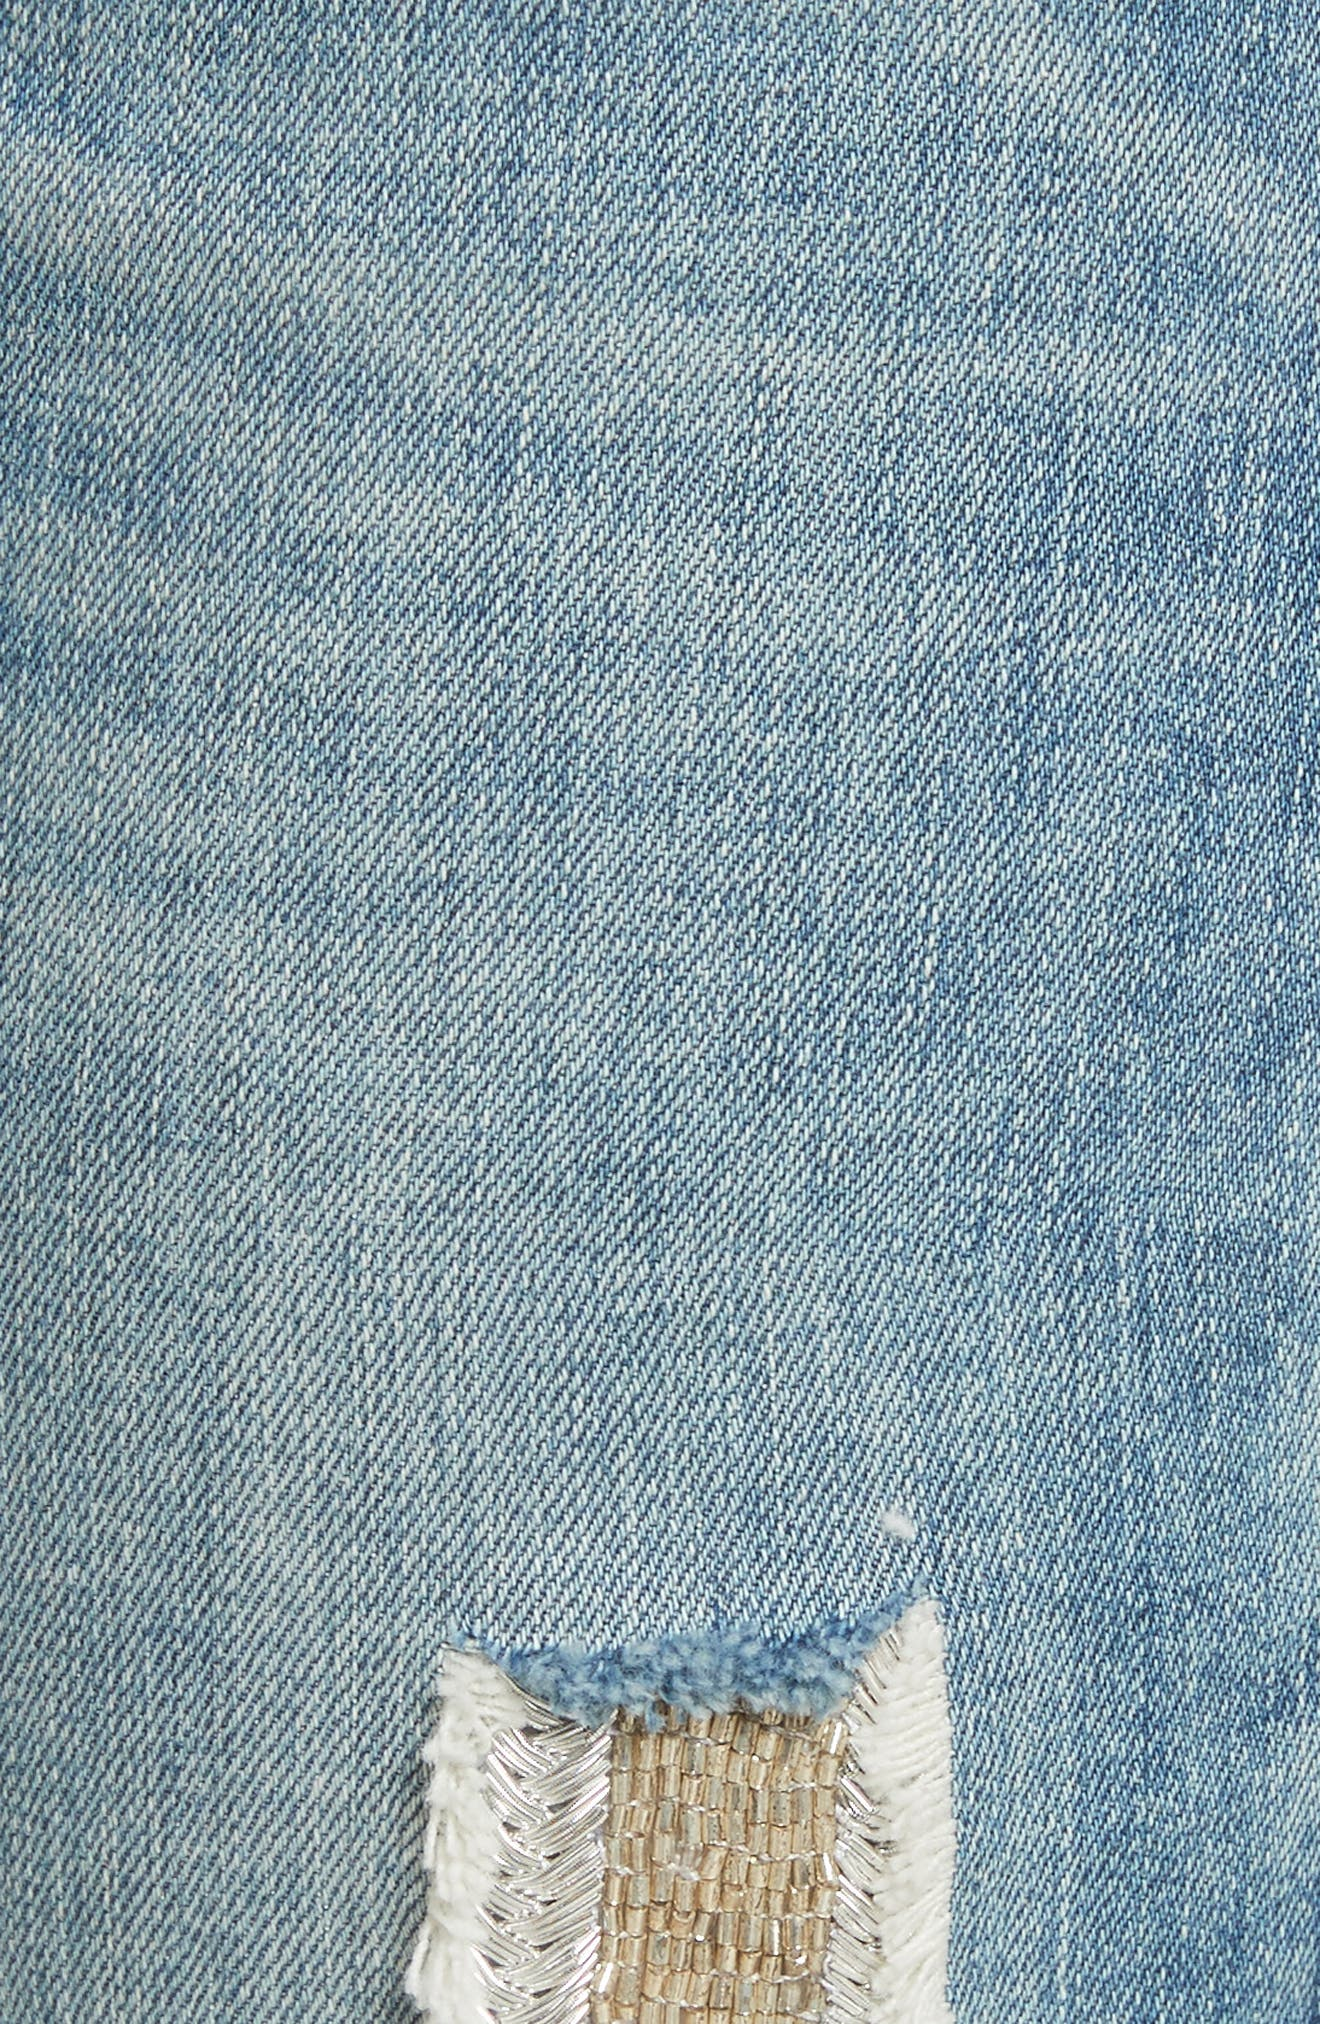 Embellished Boyfriend Jeans,                             Alternate thumbnail 5, color,                             Blue Berry